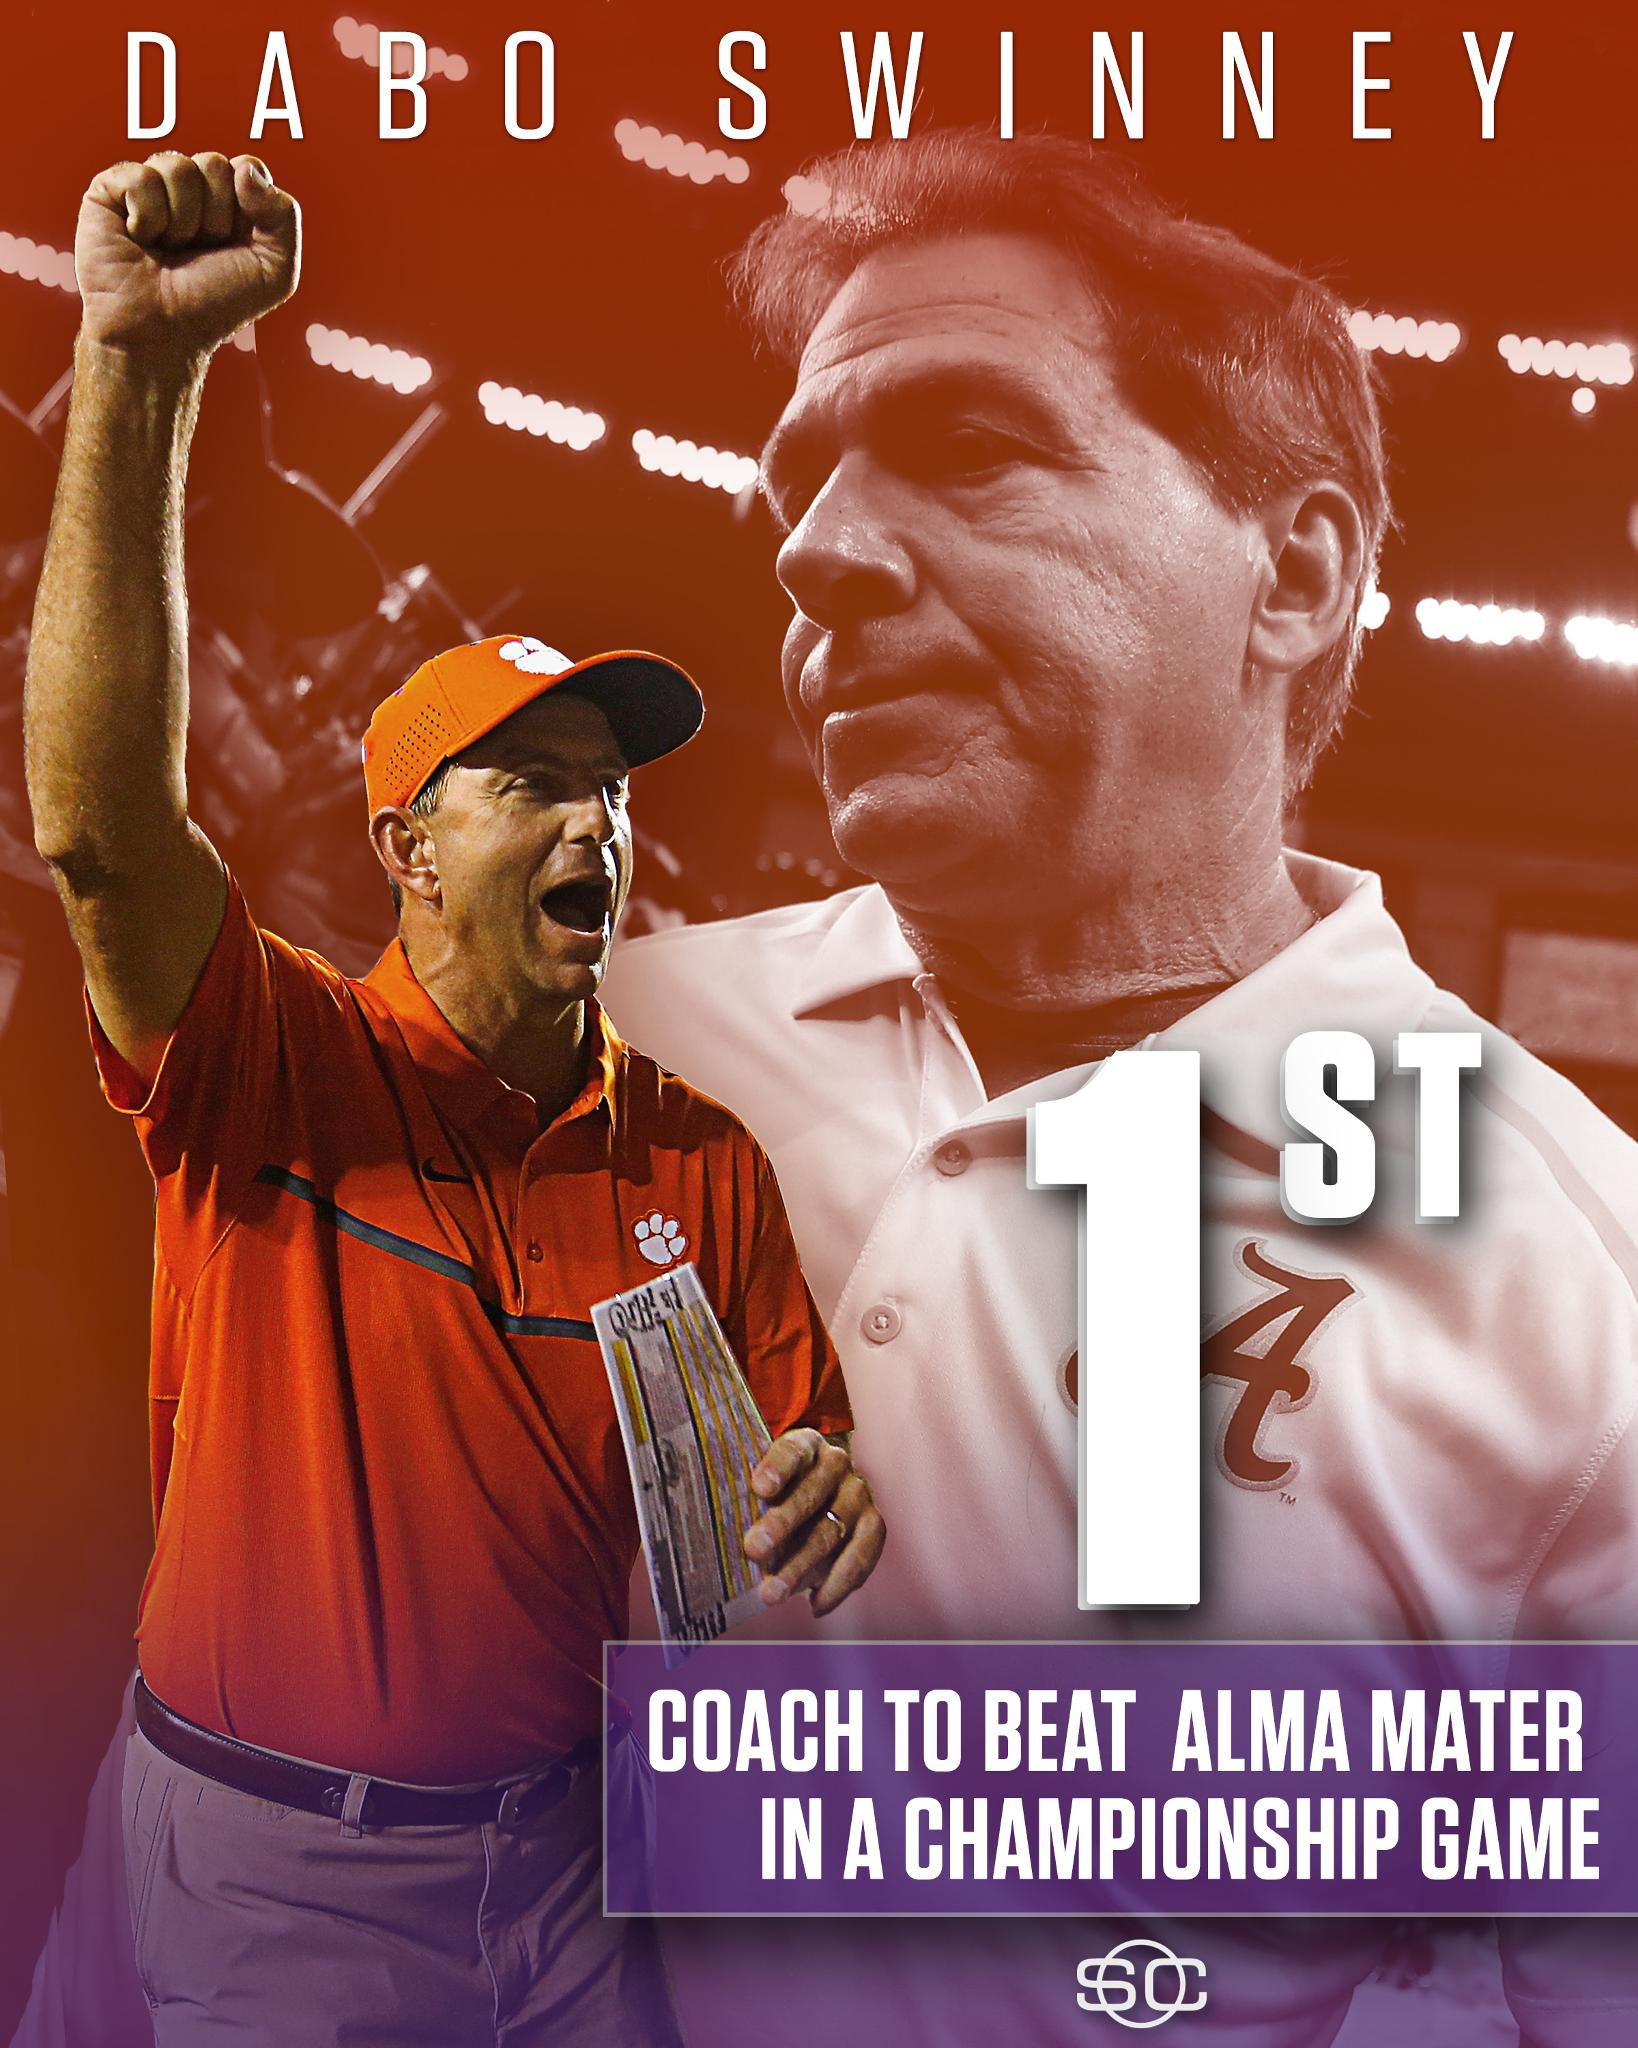 Dabo Swinney & Clemson's win is historic. https://t.co/emdSV2sTcp